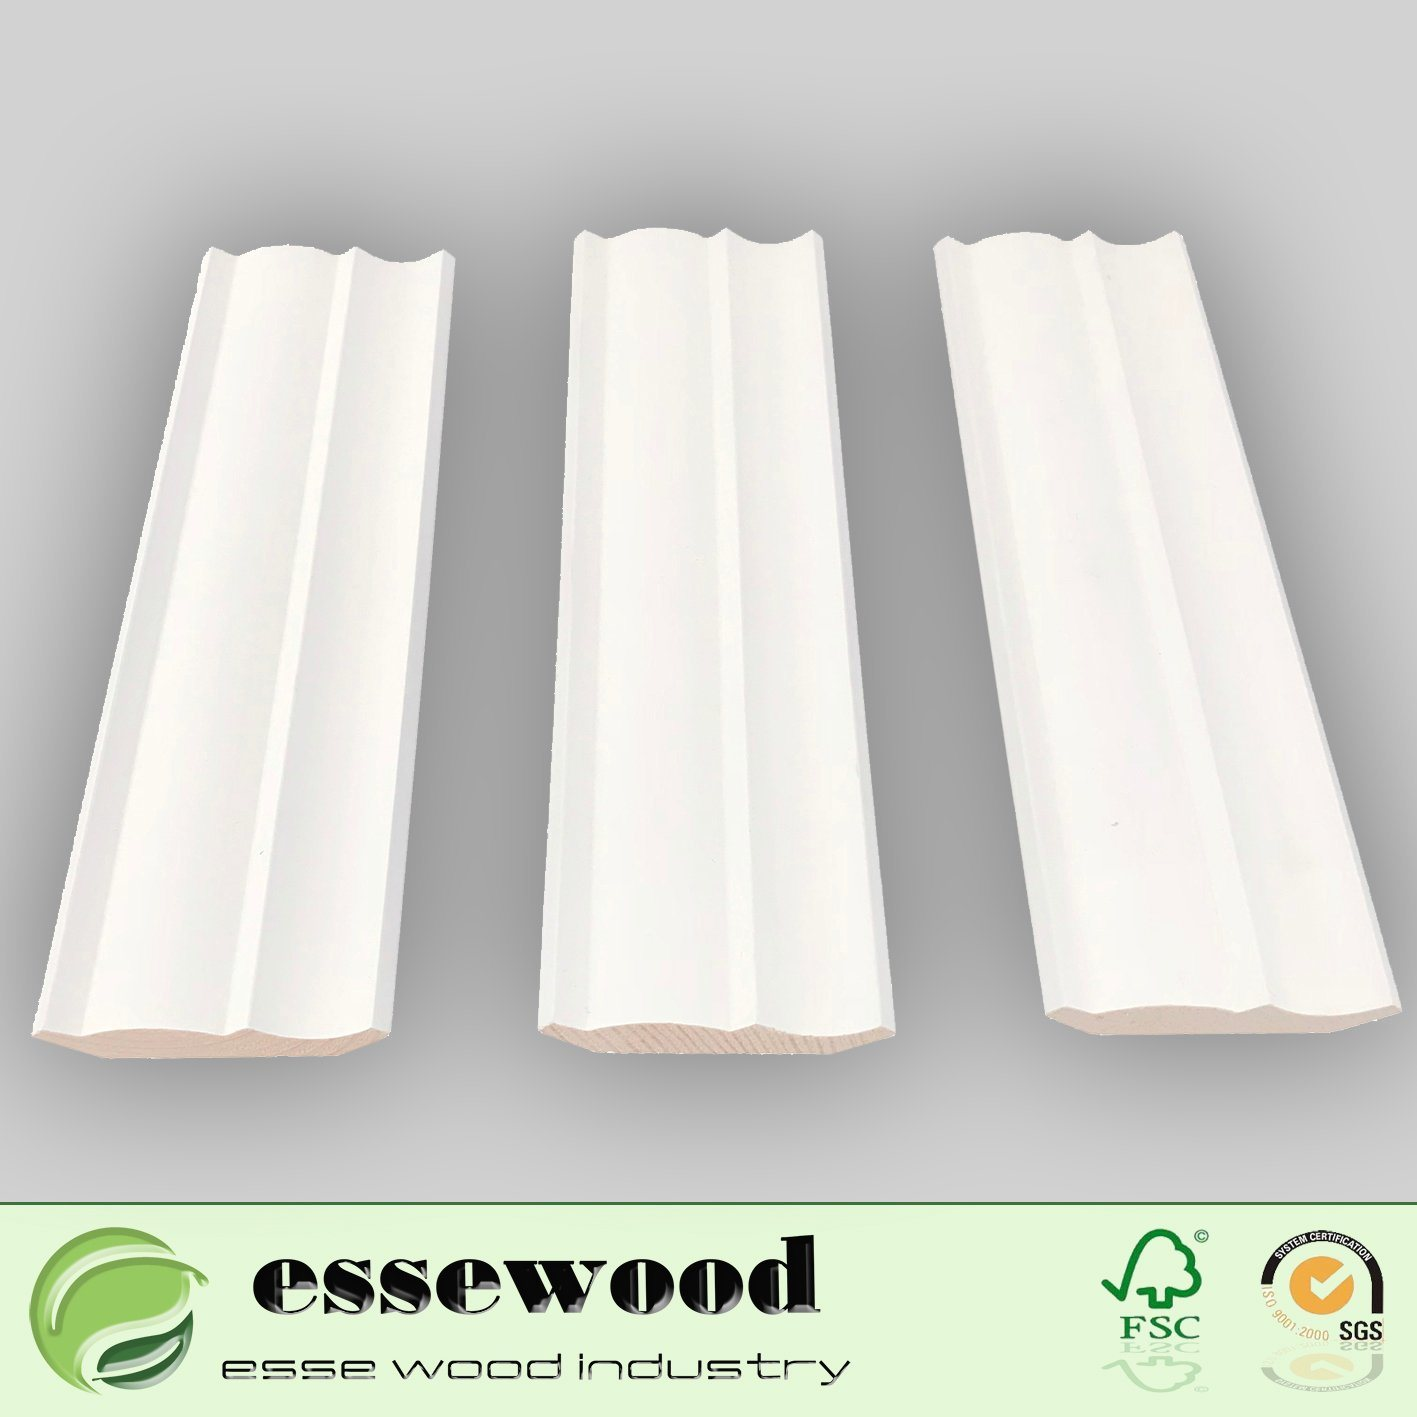 Decorative White Primed Wood Moulding Furniture Moulding/Wood Moulding/  Architraves Baseboard Moulding/Crown Ceiling Moulding